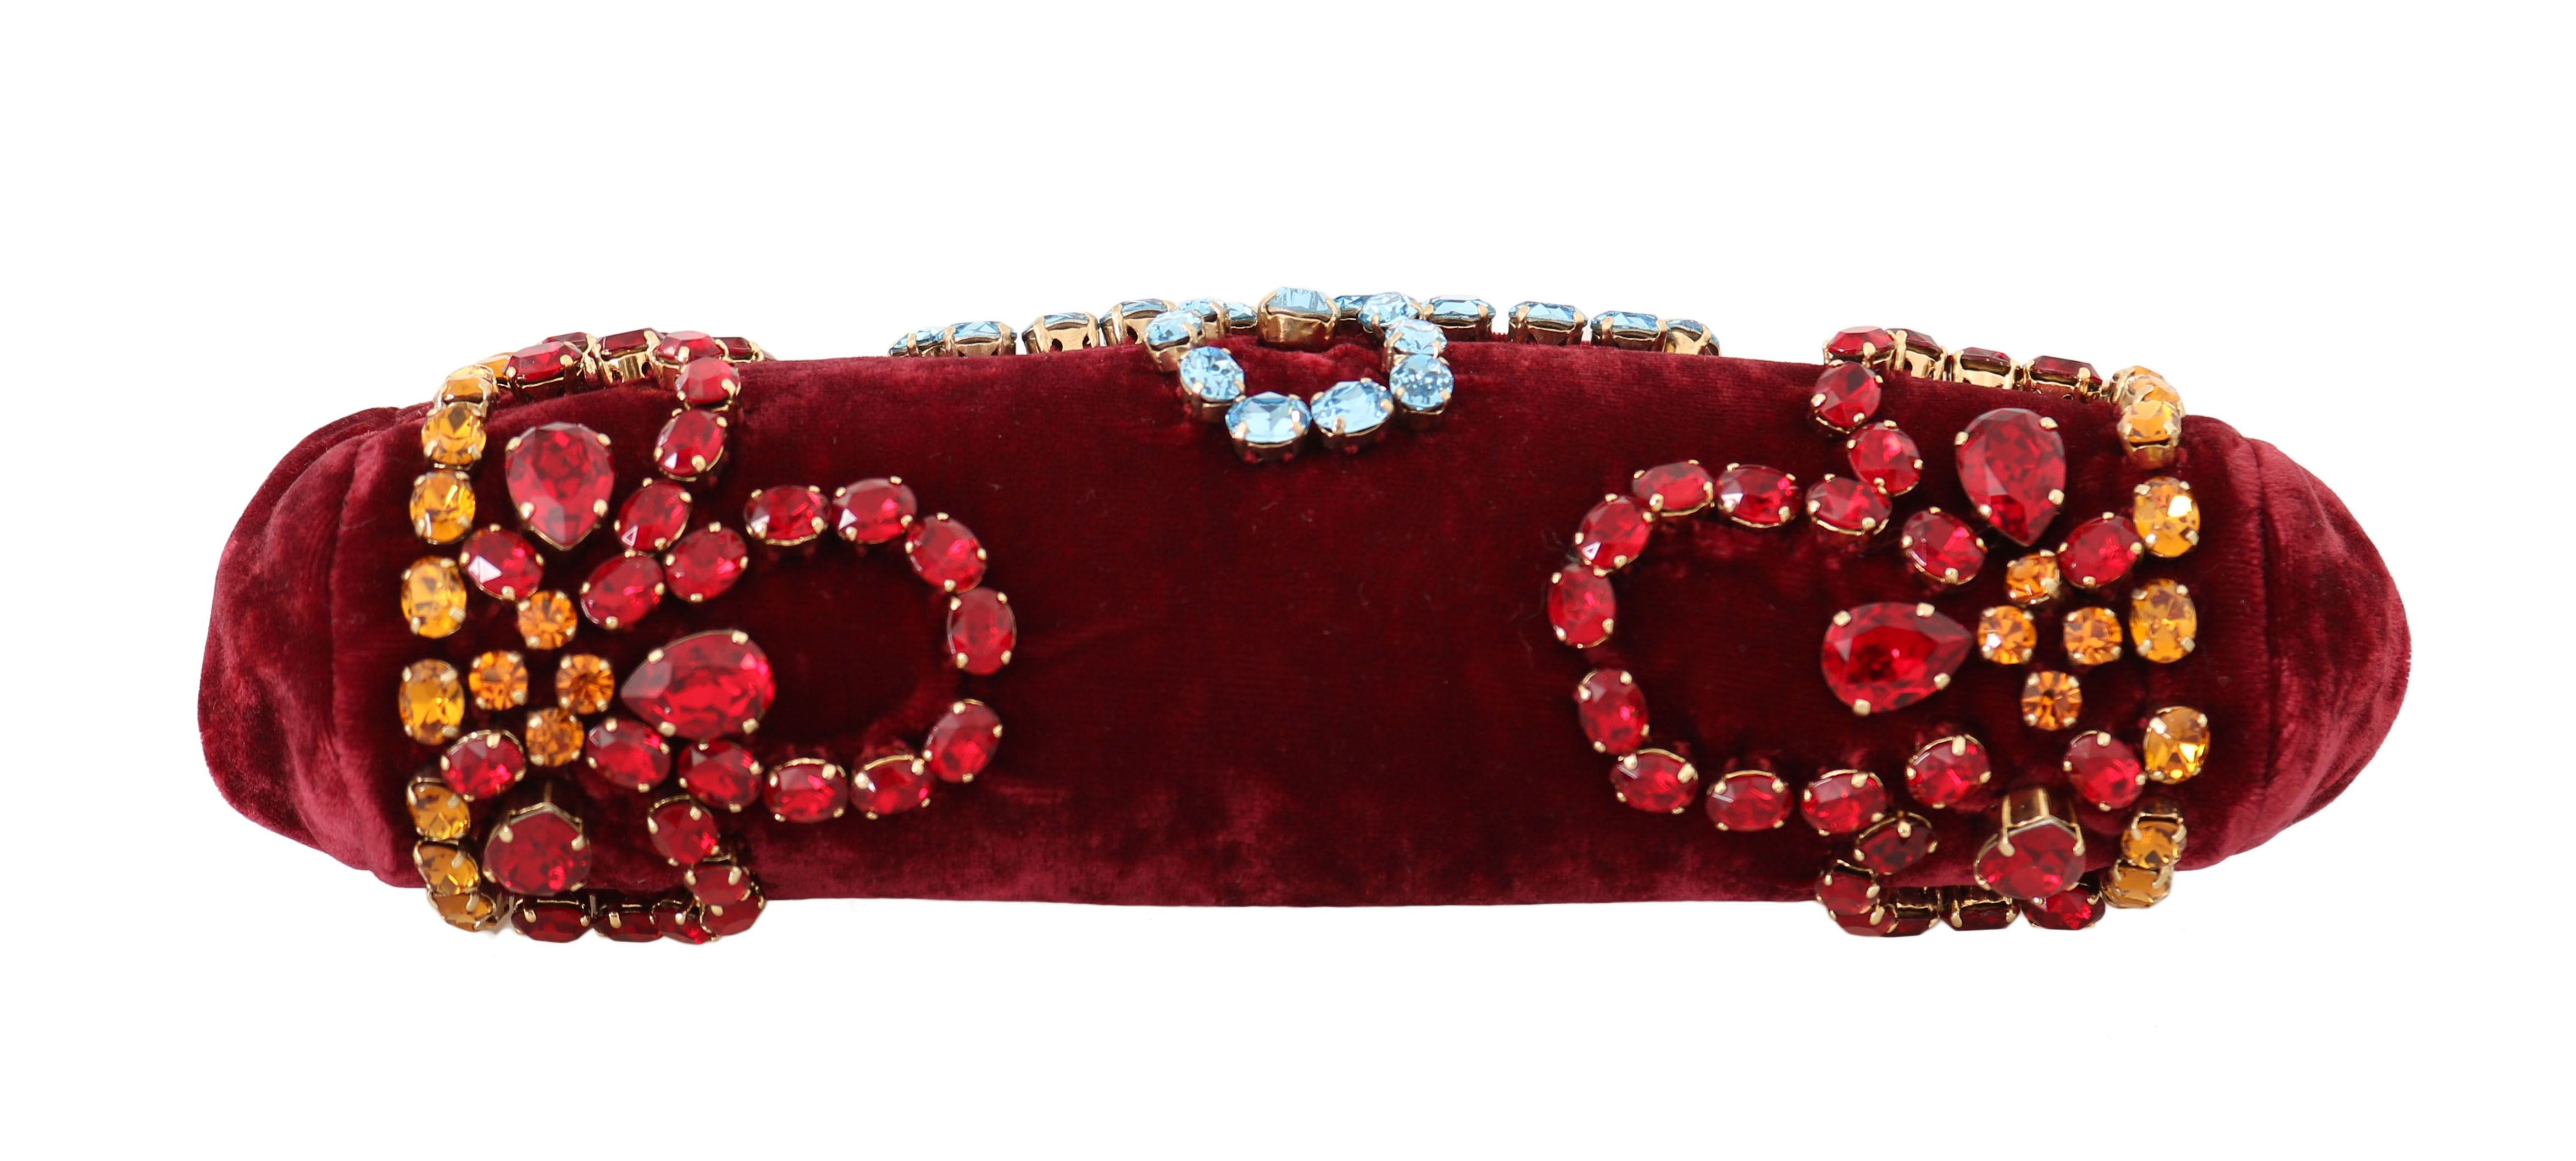 Dolce & Gabbana Red Velvet Gold Ricamo Crystal Party Clutch  Purse